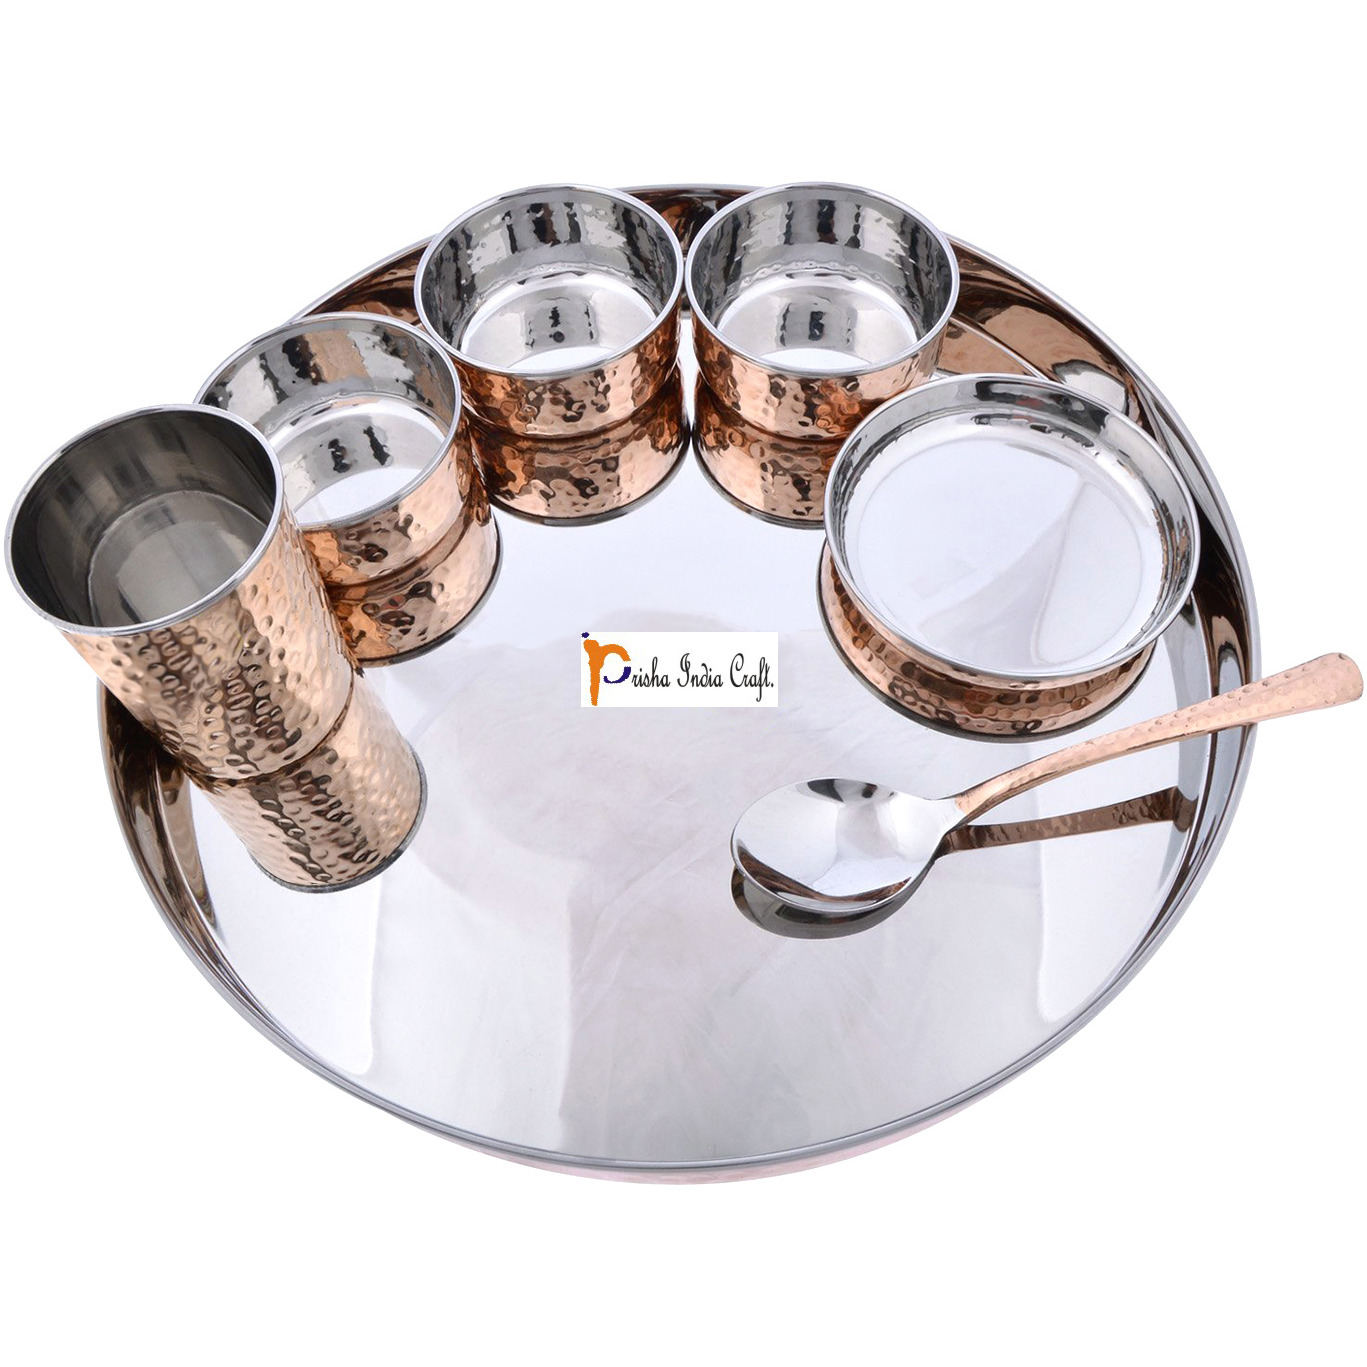 Prisha India Craft B. Set of 6 Dinnerware Traditional Stainless Steel Copper Dinner Set of Thali Plate, Bowls, Glass and Spoon, Dia 13  With 1 Stainless Steel Copper Pitcher Jug - Christmas Gift